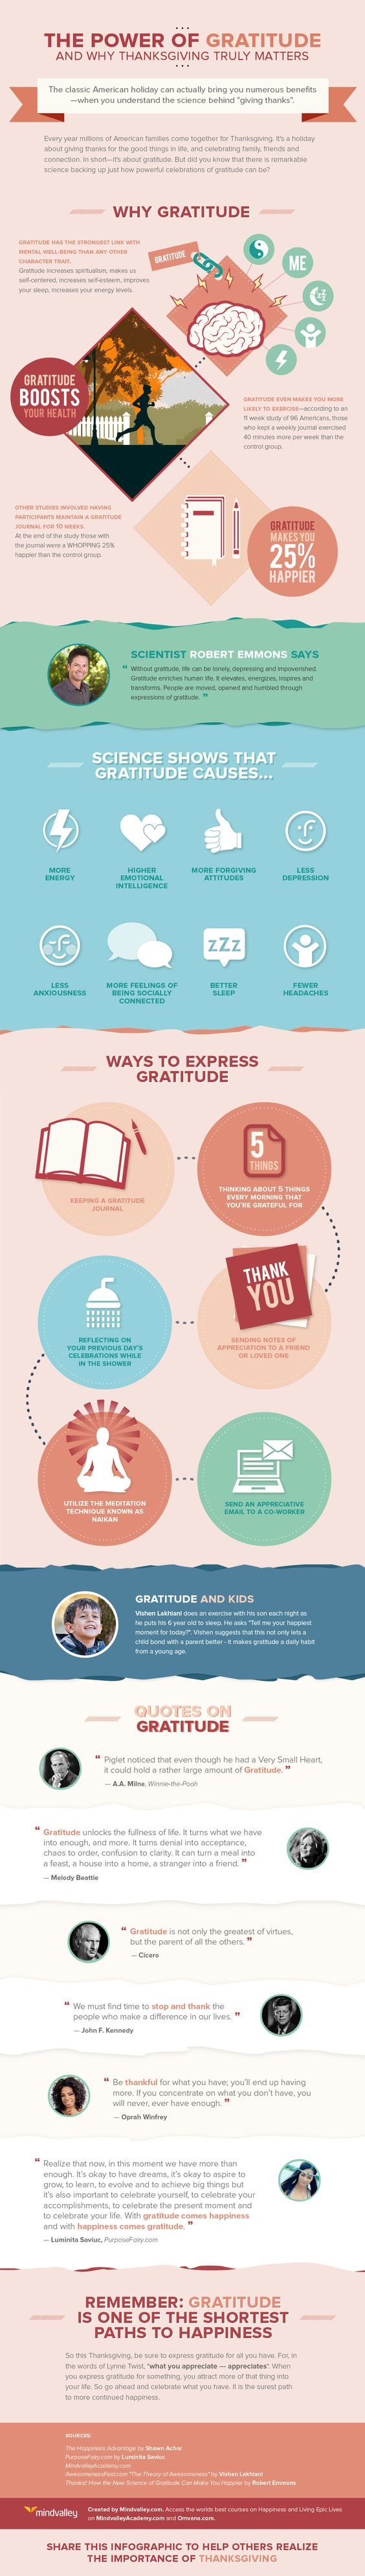 The Power of Gratitude #infographic                              …